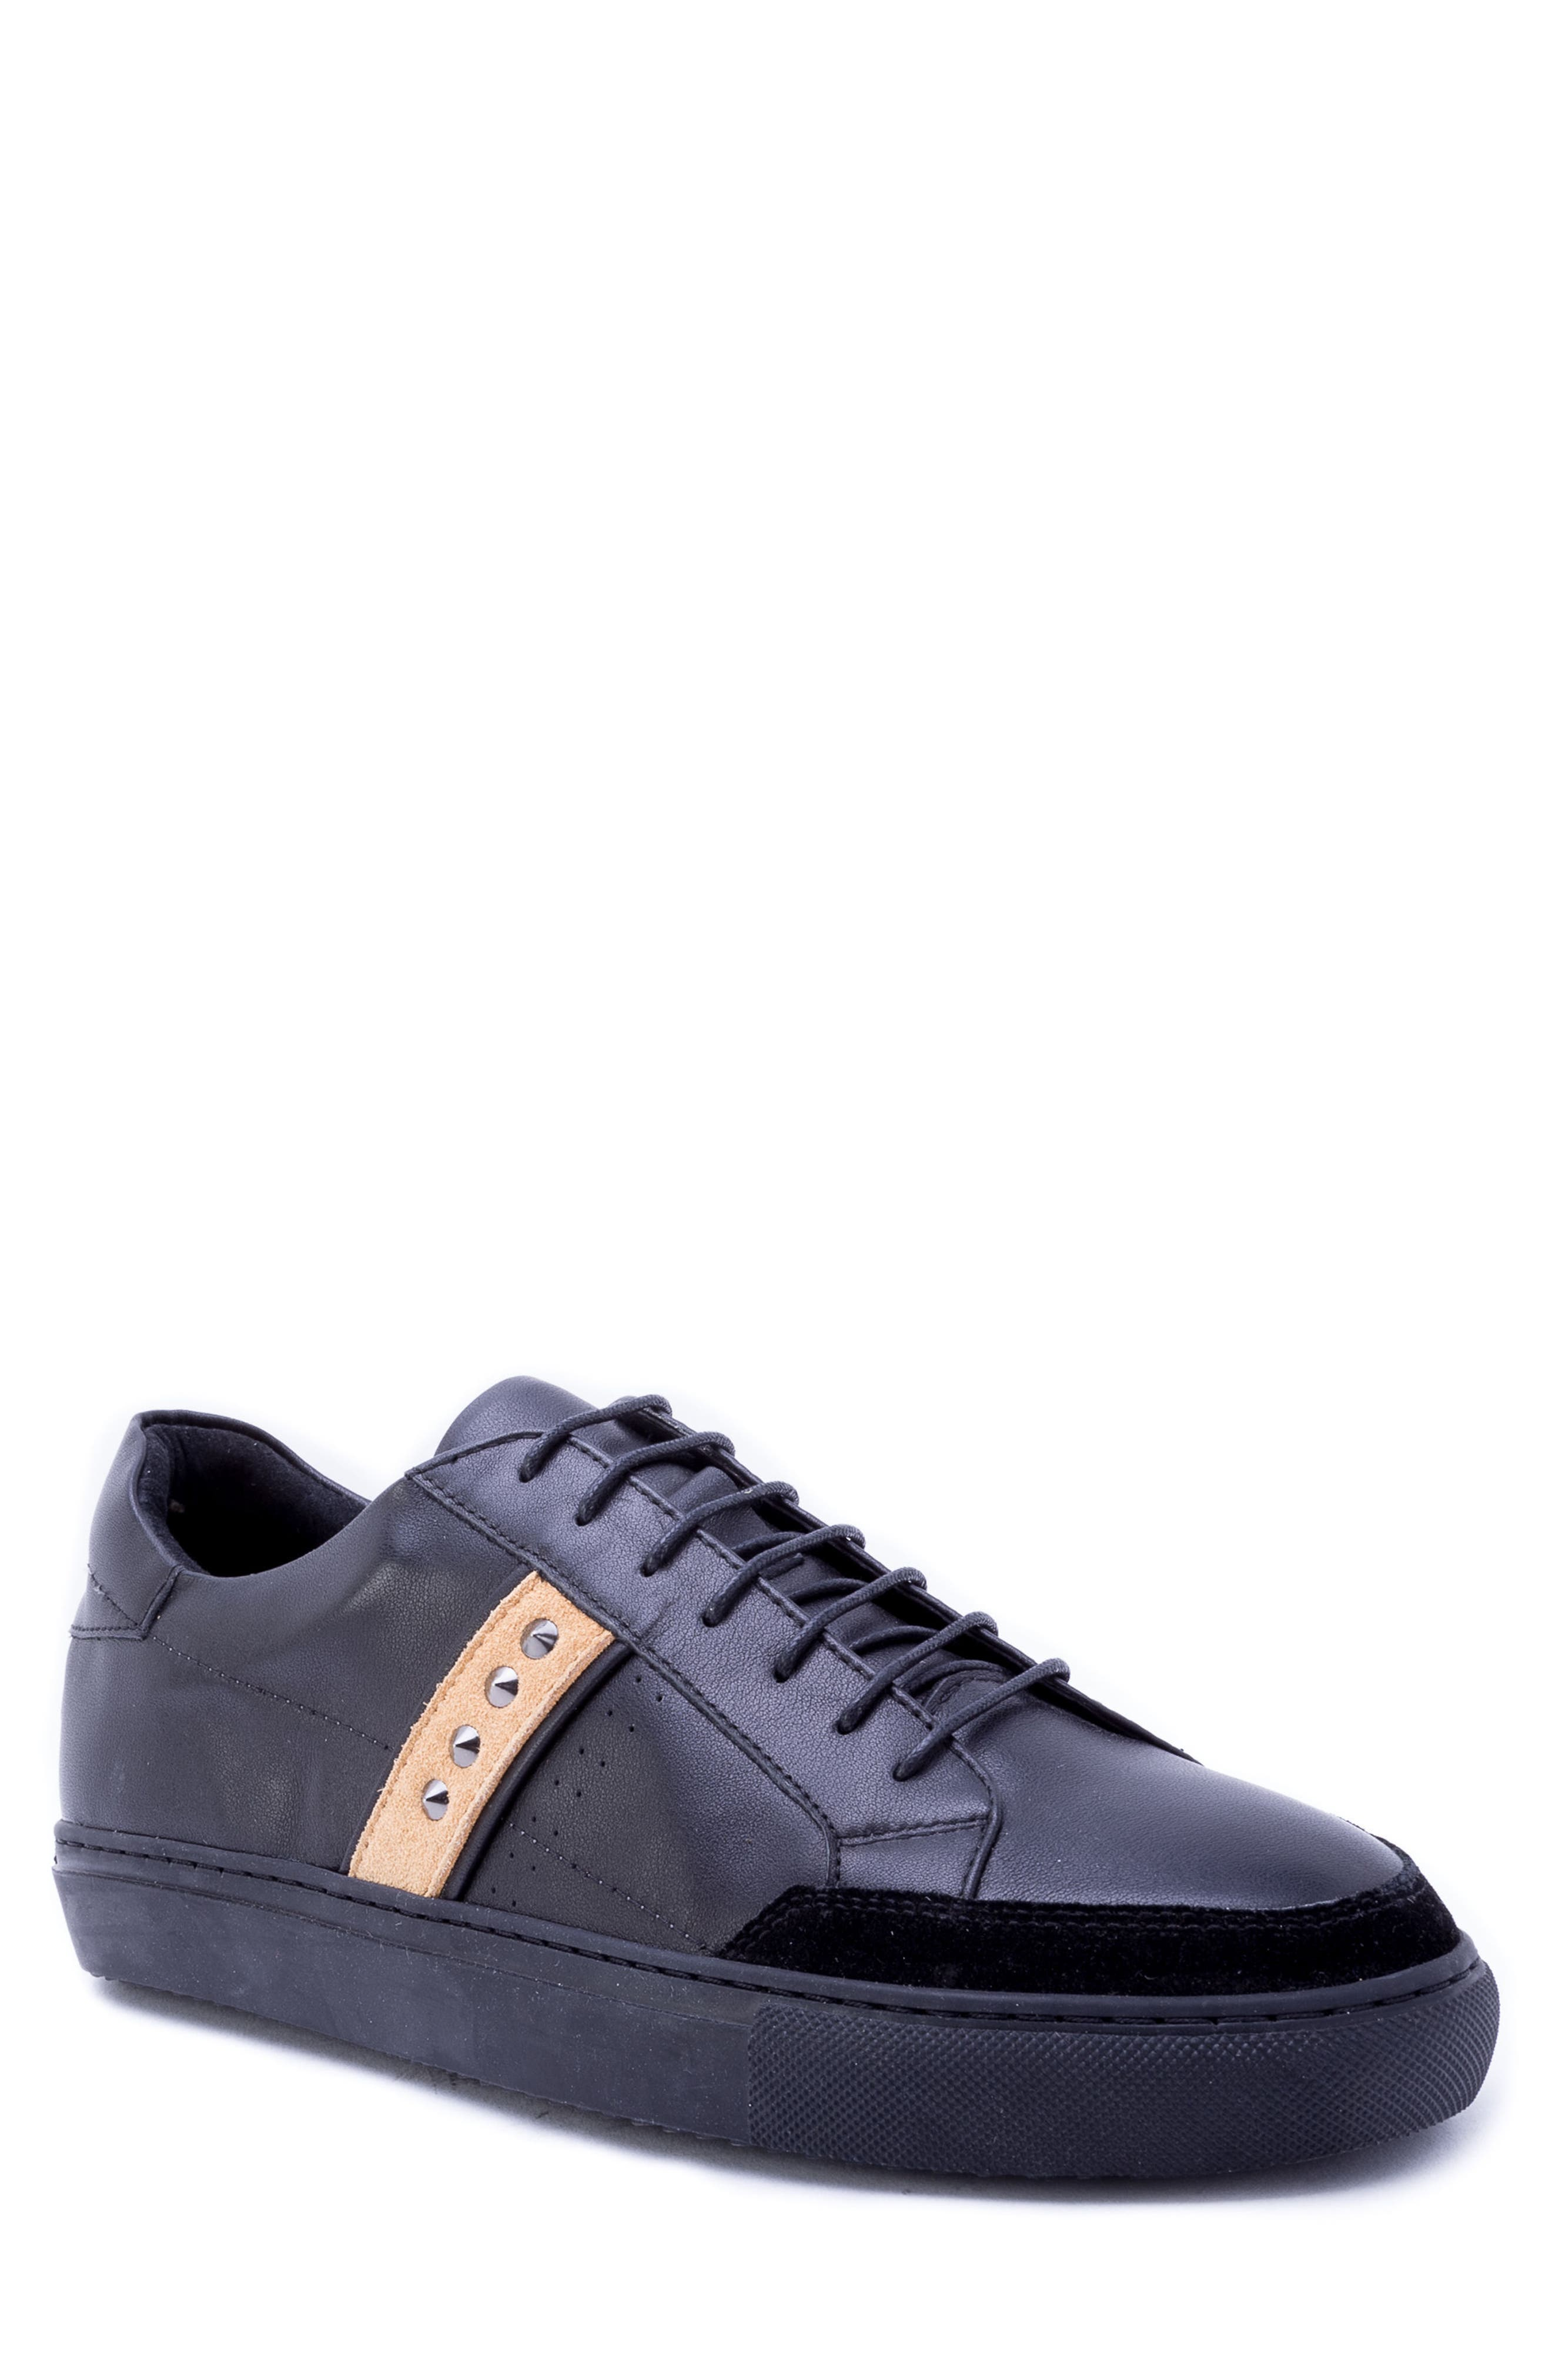 Connery Sneaker,                             Main thumbnail 1, color,                             BLACK LEATHER